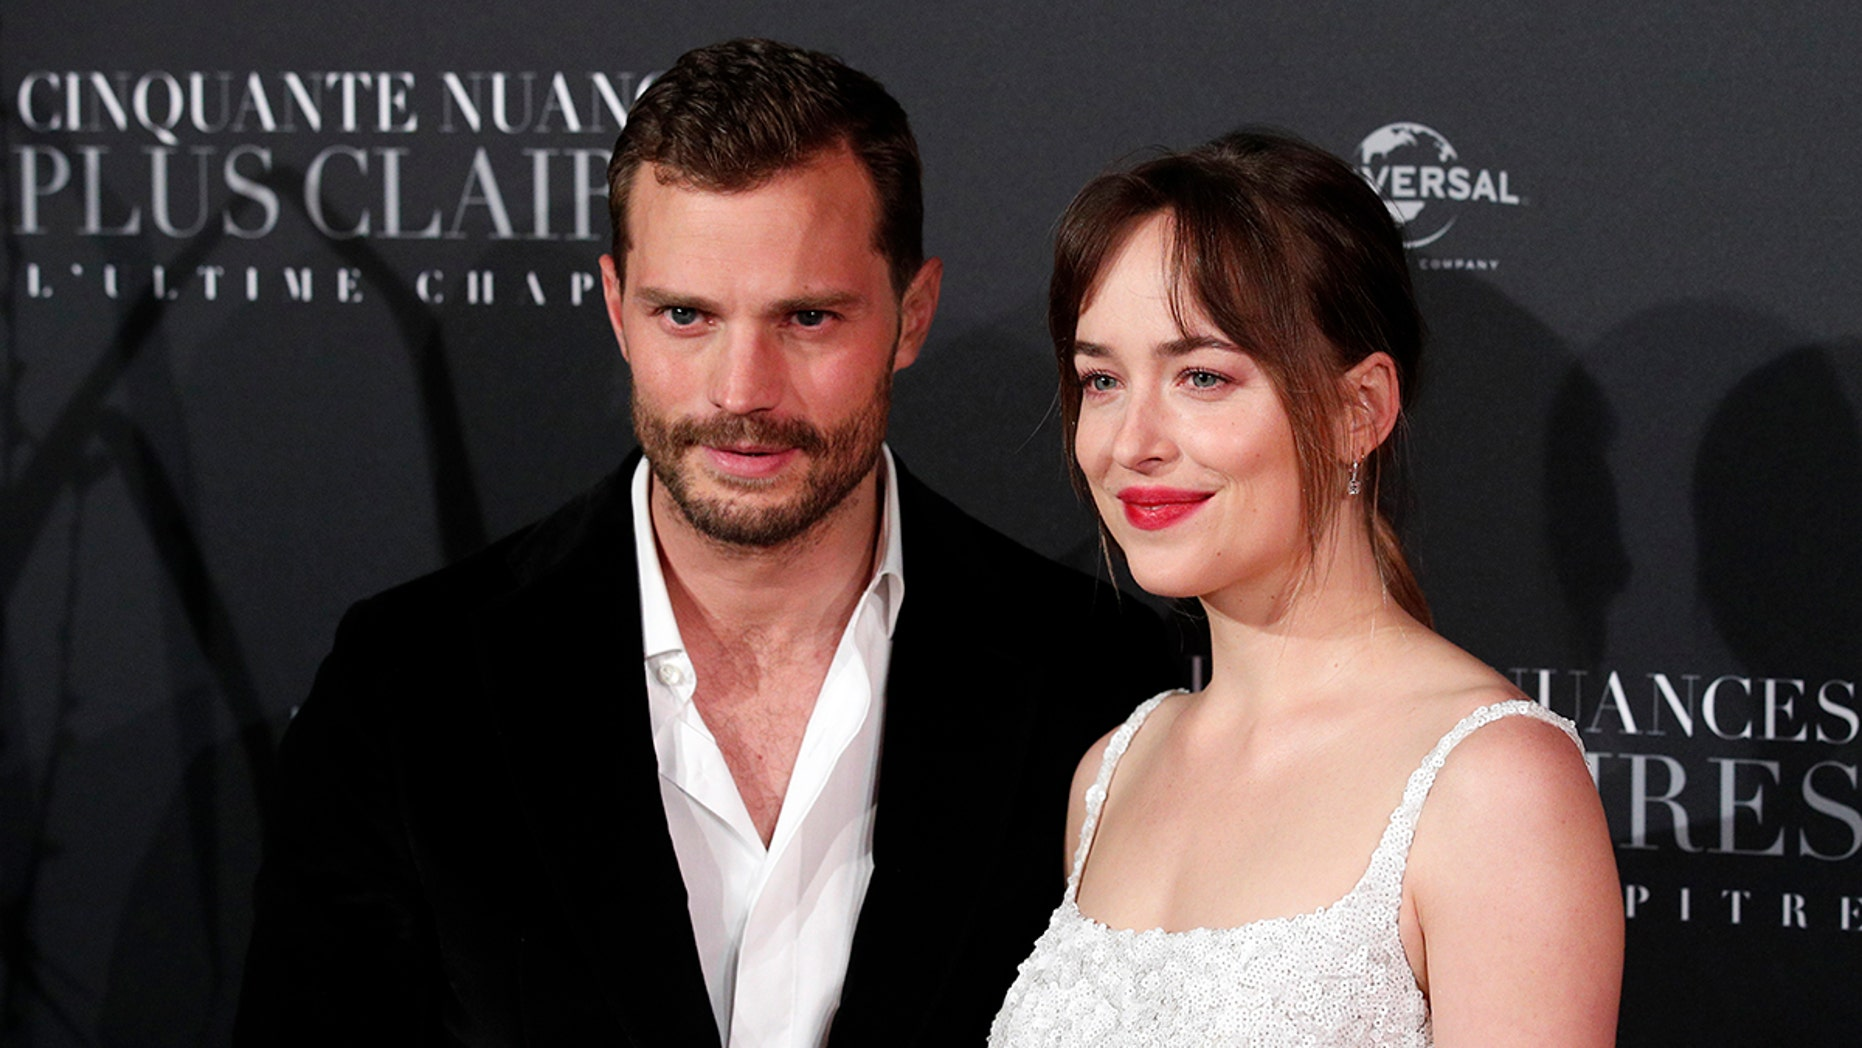 Jamie Dornan, left, and Dakota Johnson pose during a photocall for the world premiere of 'Fifty Shades Freed - 50 Nuances Plus Claires' at Salle Pleyel in Paris, Tuesday, Feb. 6, 2018. (AP Photo/Francois Mori)